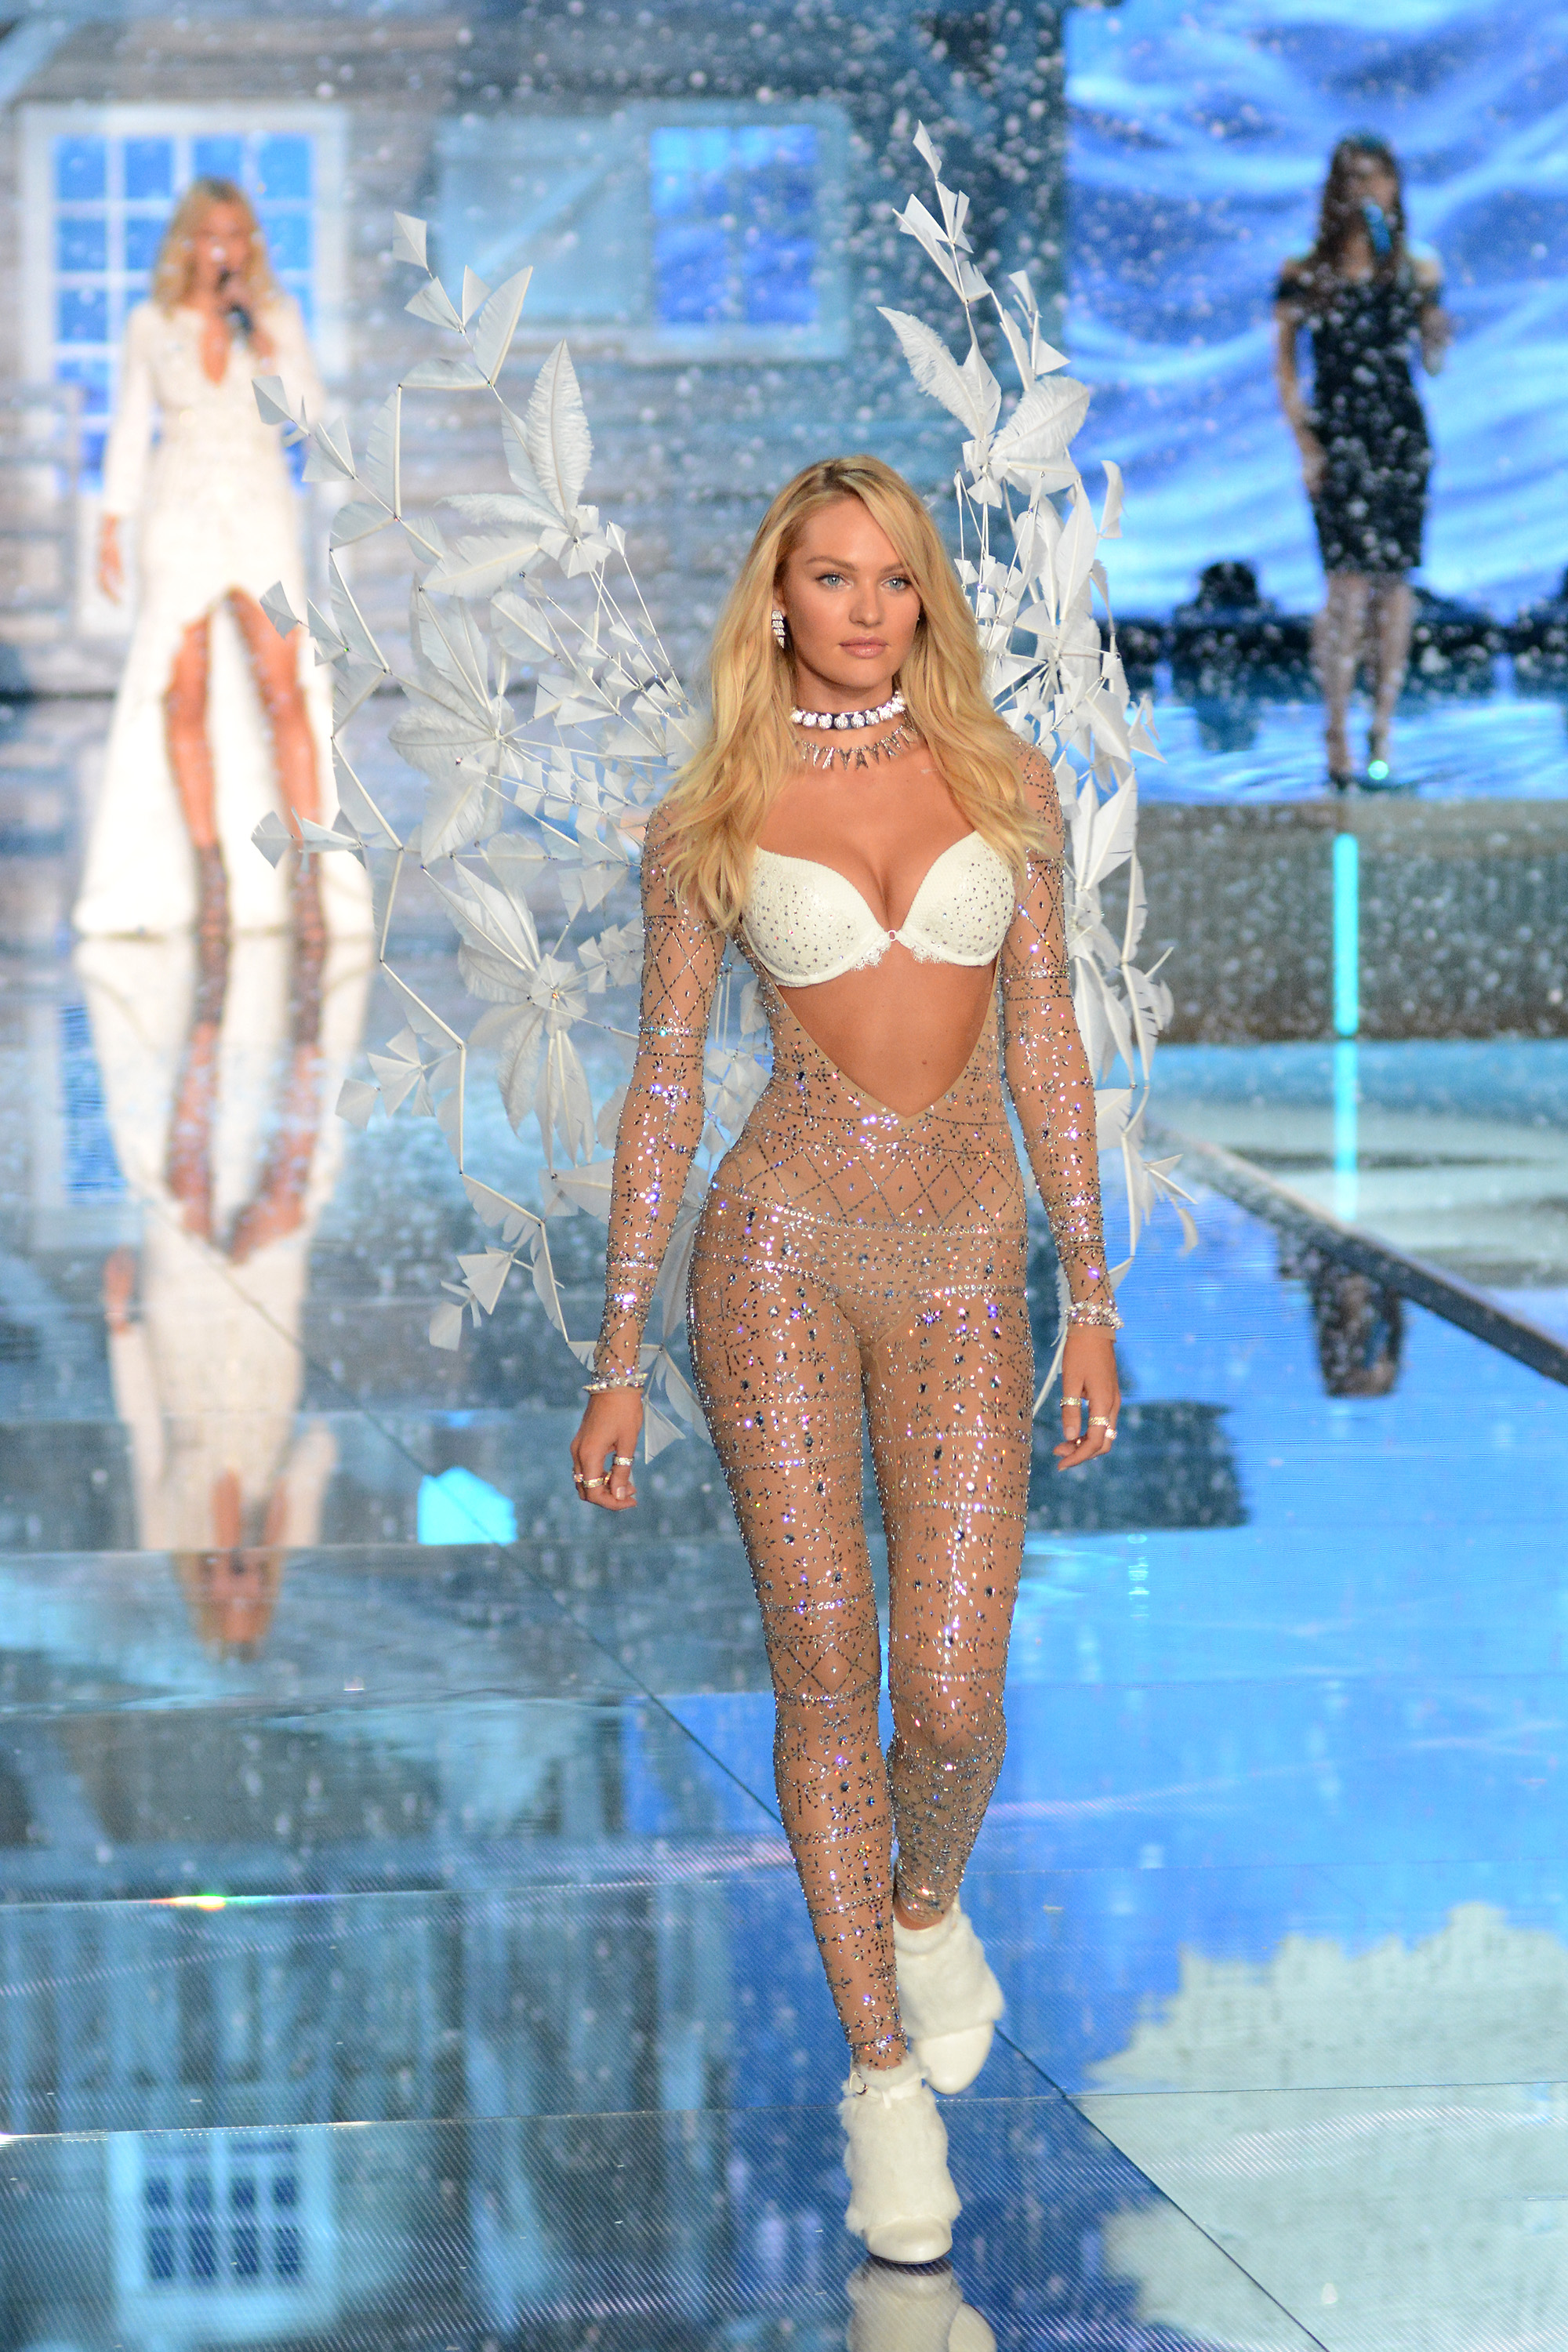 2015 Victoria's Secret Fashion Show - Runway  Featuring: Candice Swanepoel Where: Queens, New York, United States When: 10 Nov 2015 Credit: Ivan Nikolov/WENN.com